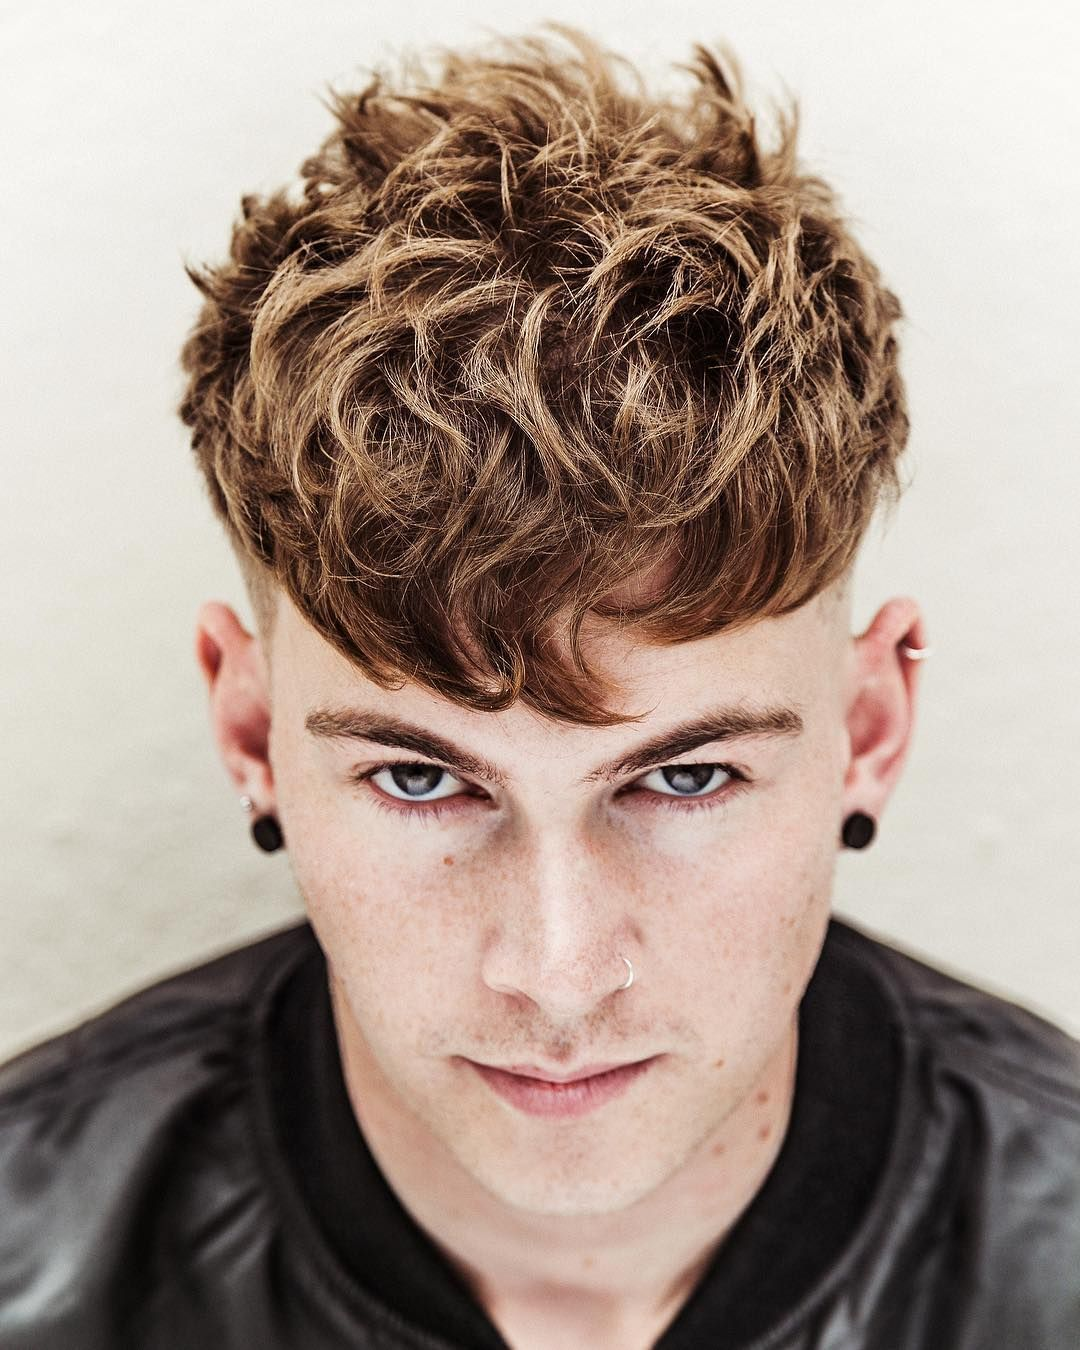 here are our predictions for the upcoming men's hairstyles for next